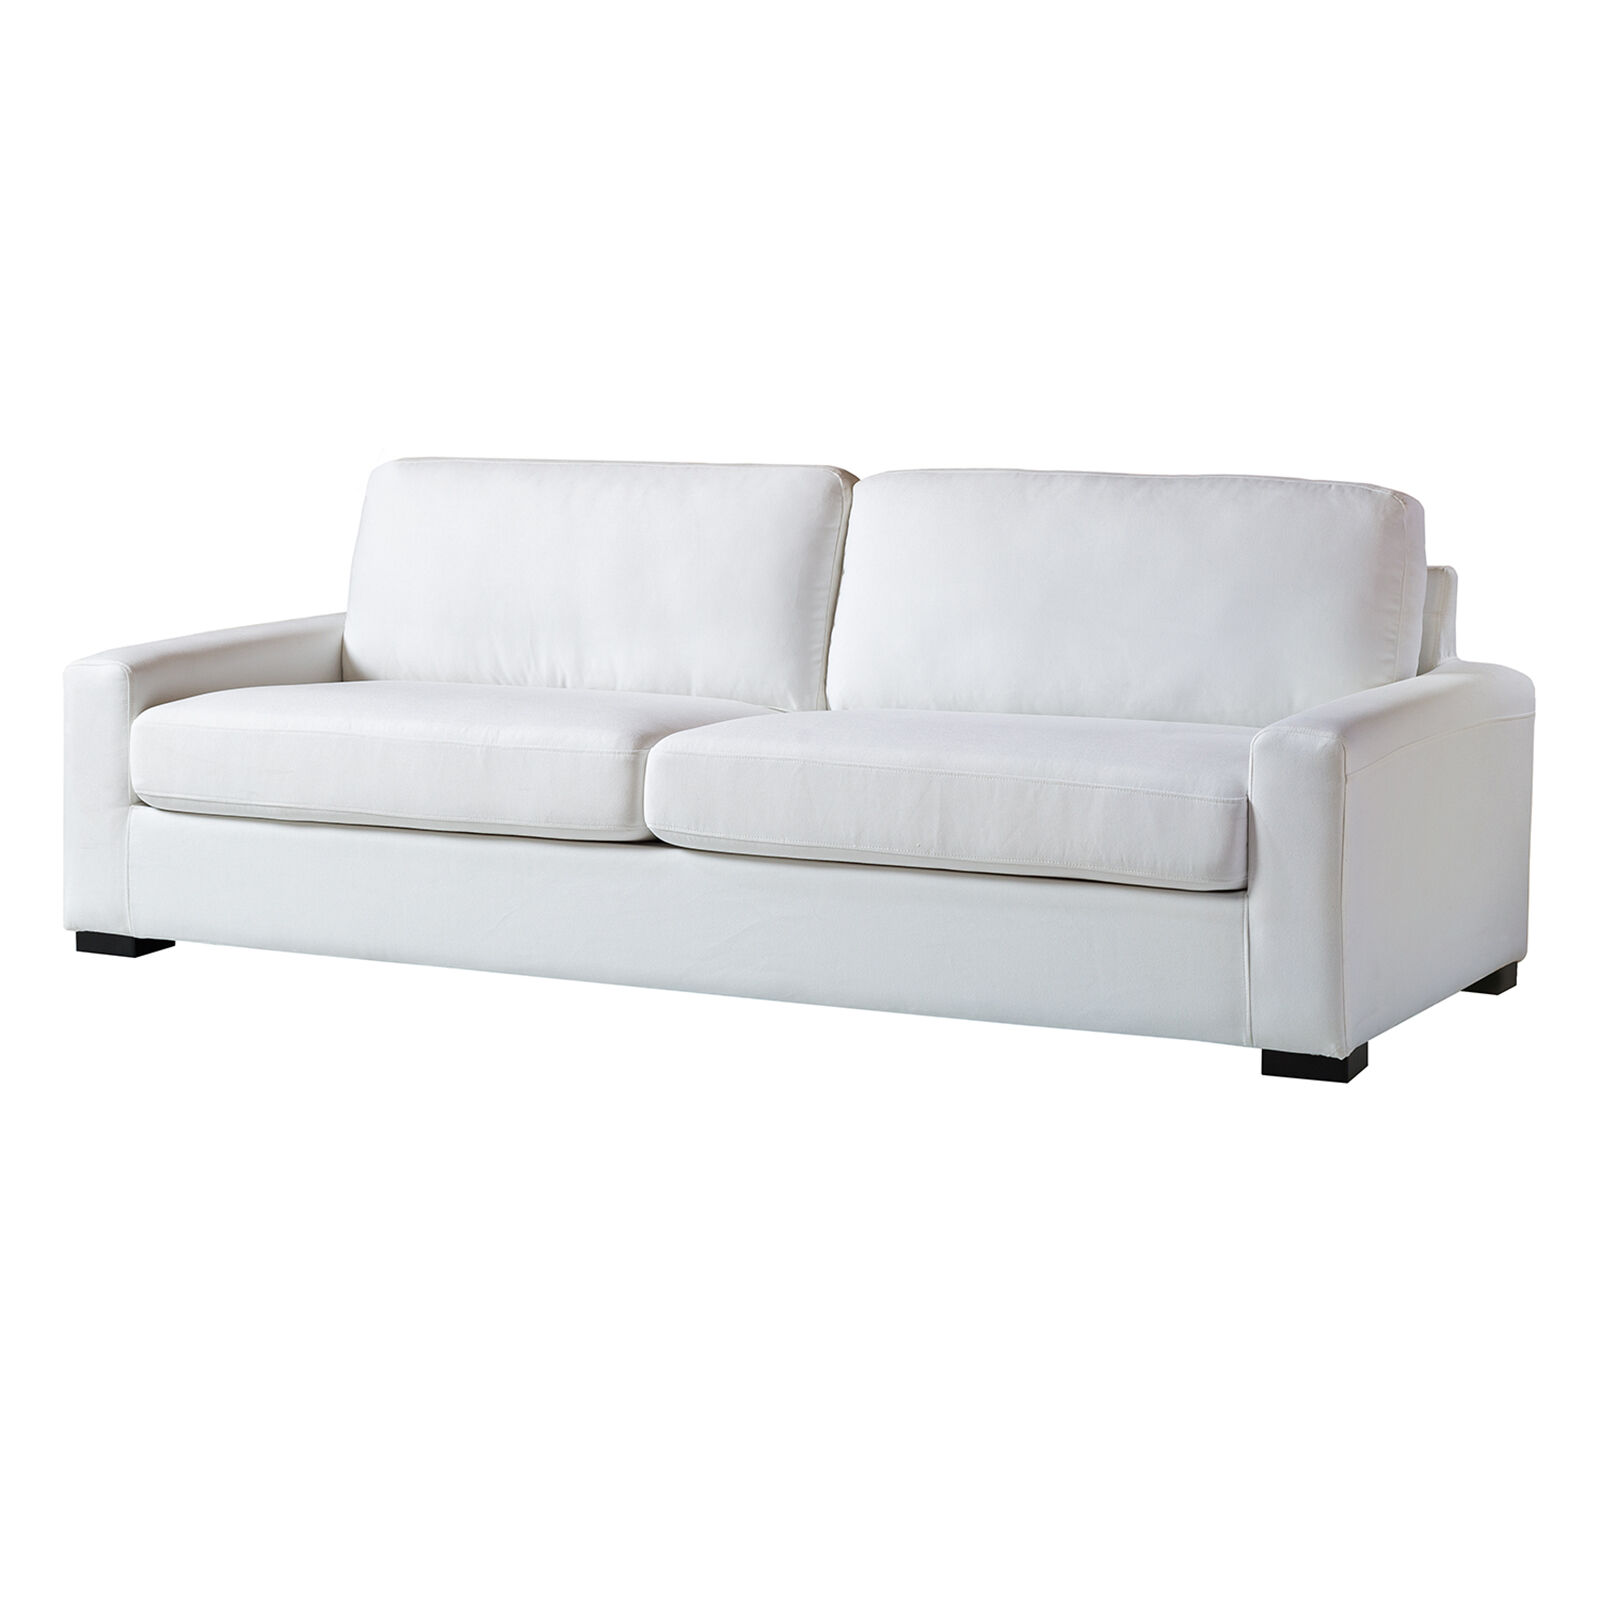 off white slipcover sofa table furniture malone at home